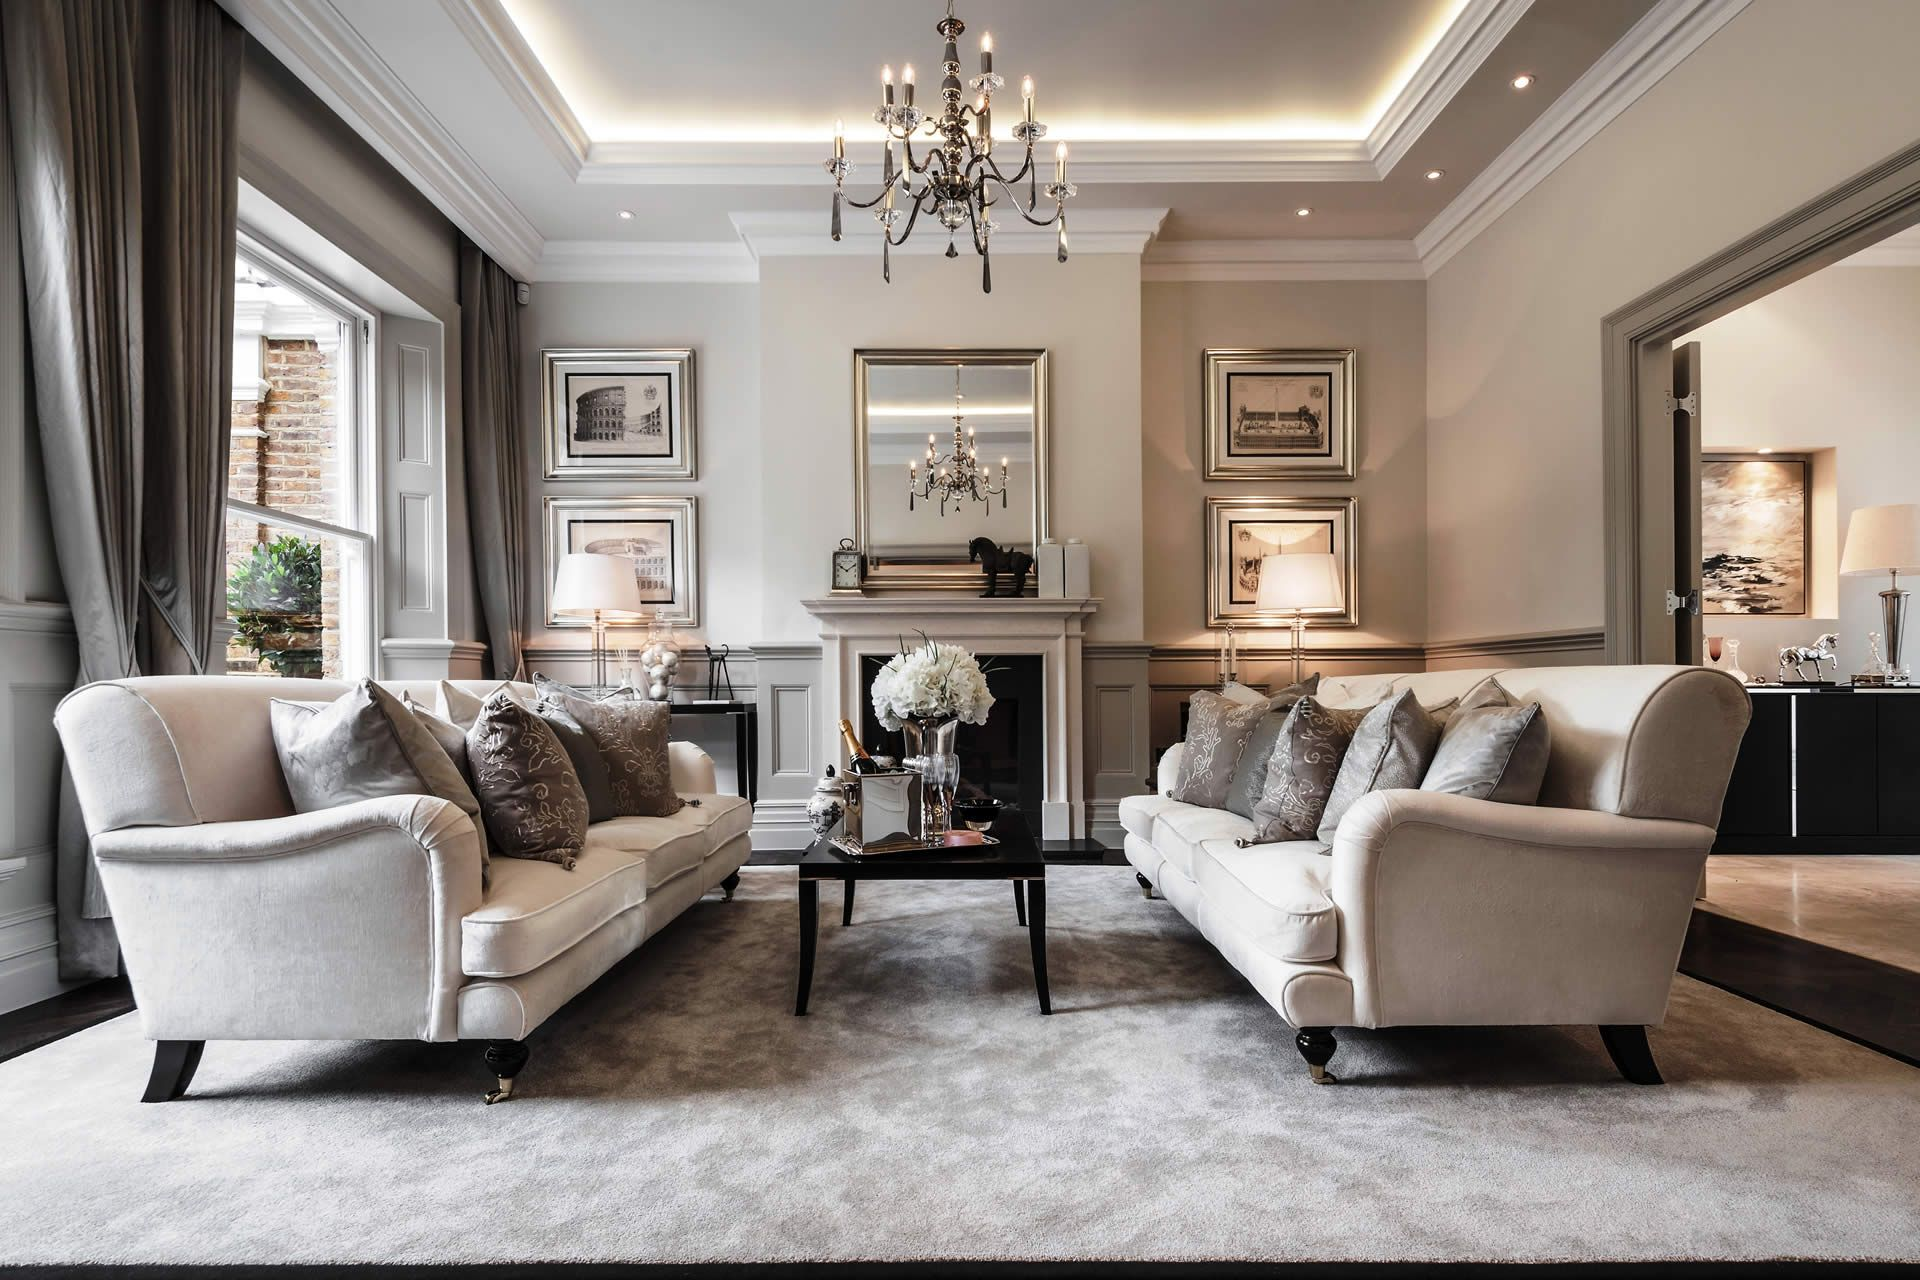 Alexander James Interiors Interior Design Show Houses Luxury